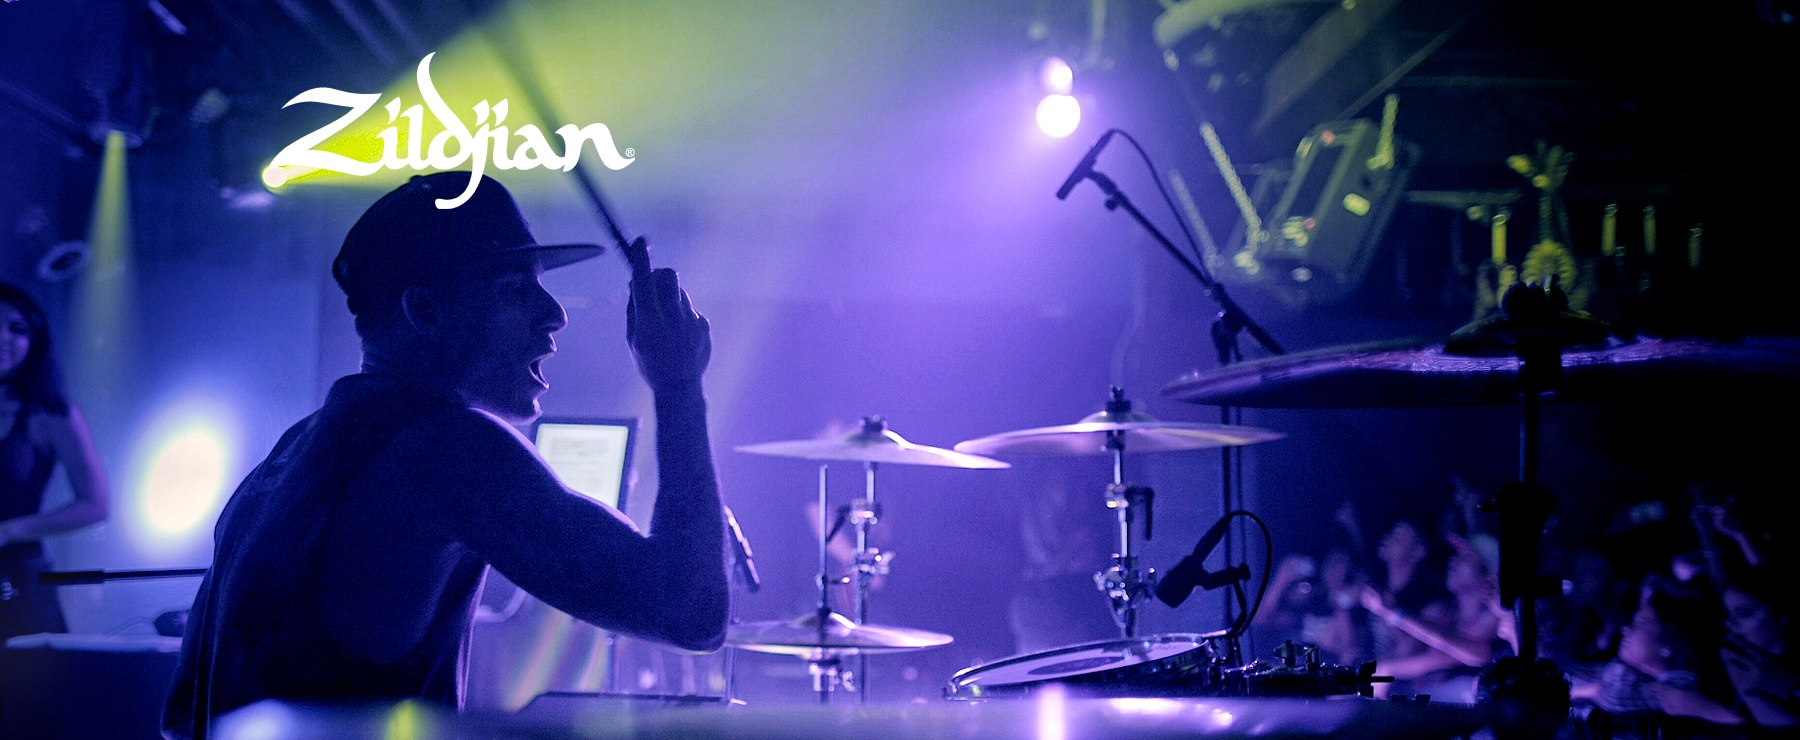 Zildjian Endorsement application header.jpg